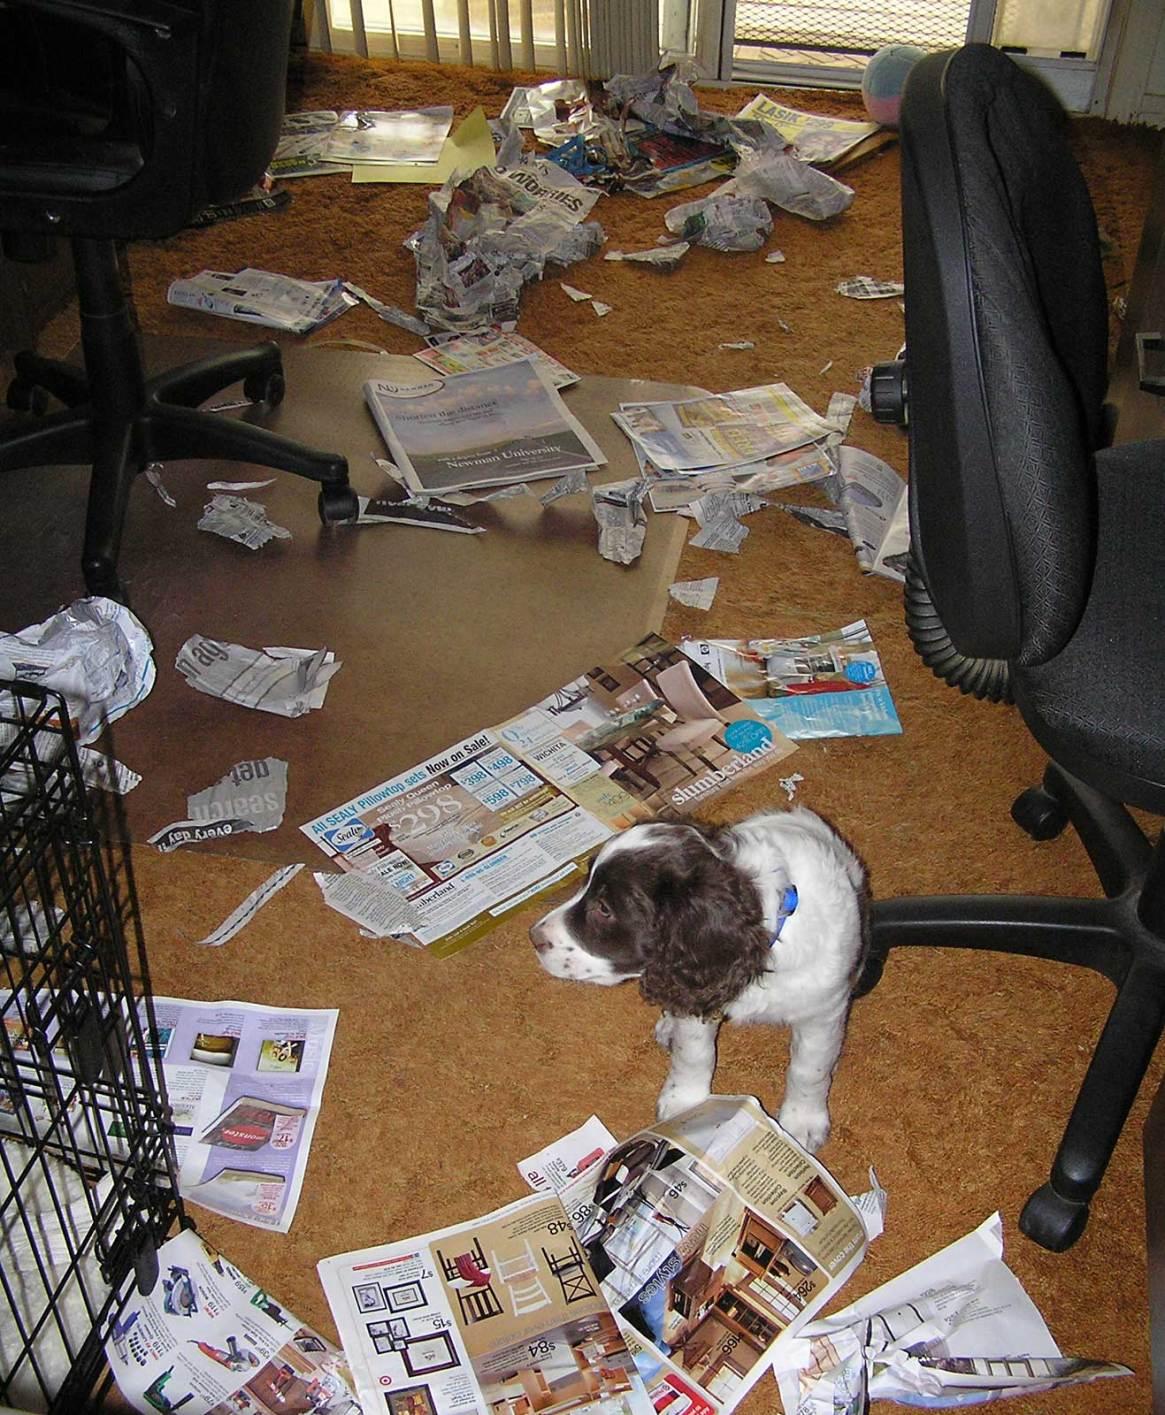 The office is a mess